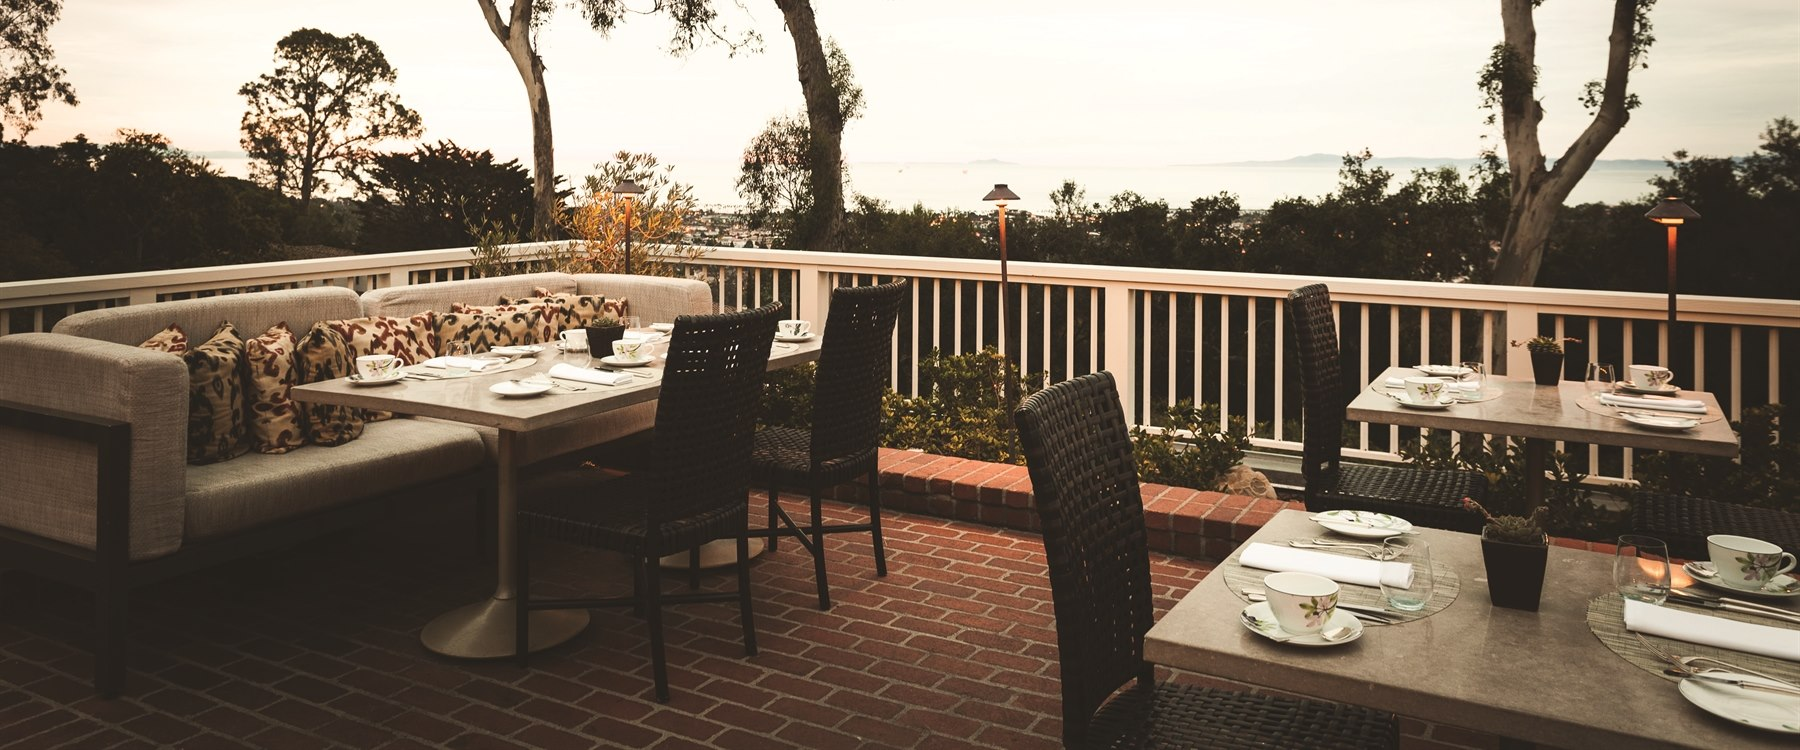 Terrace Restaurant at Belmond El Encanto, Santa Barbara